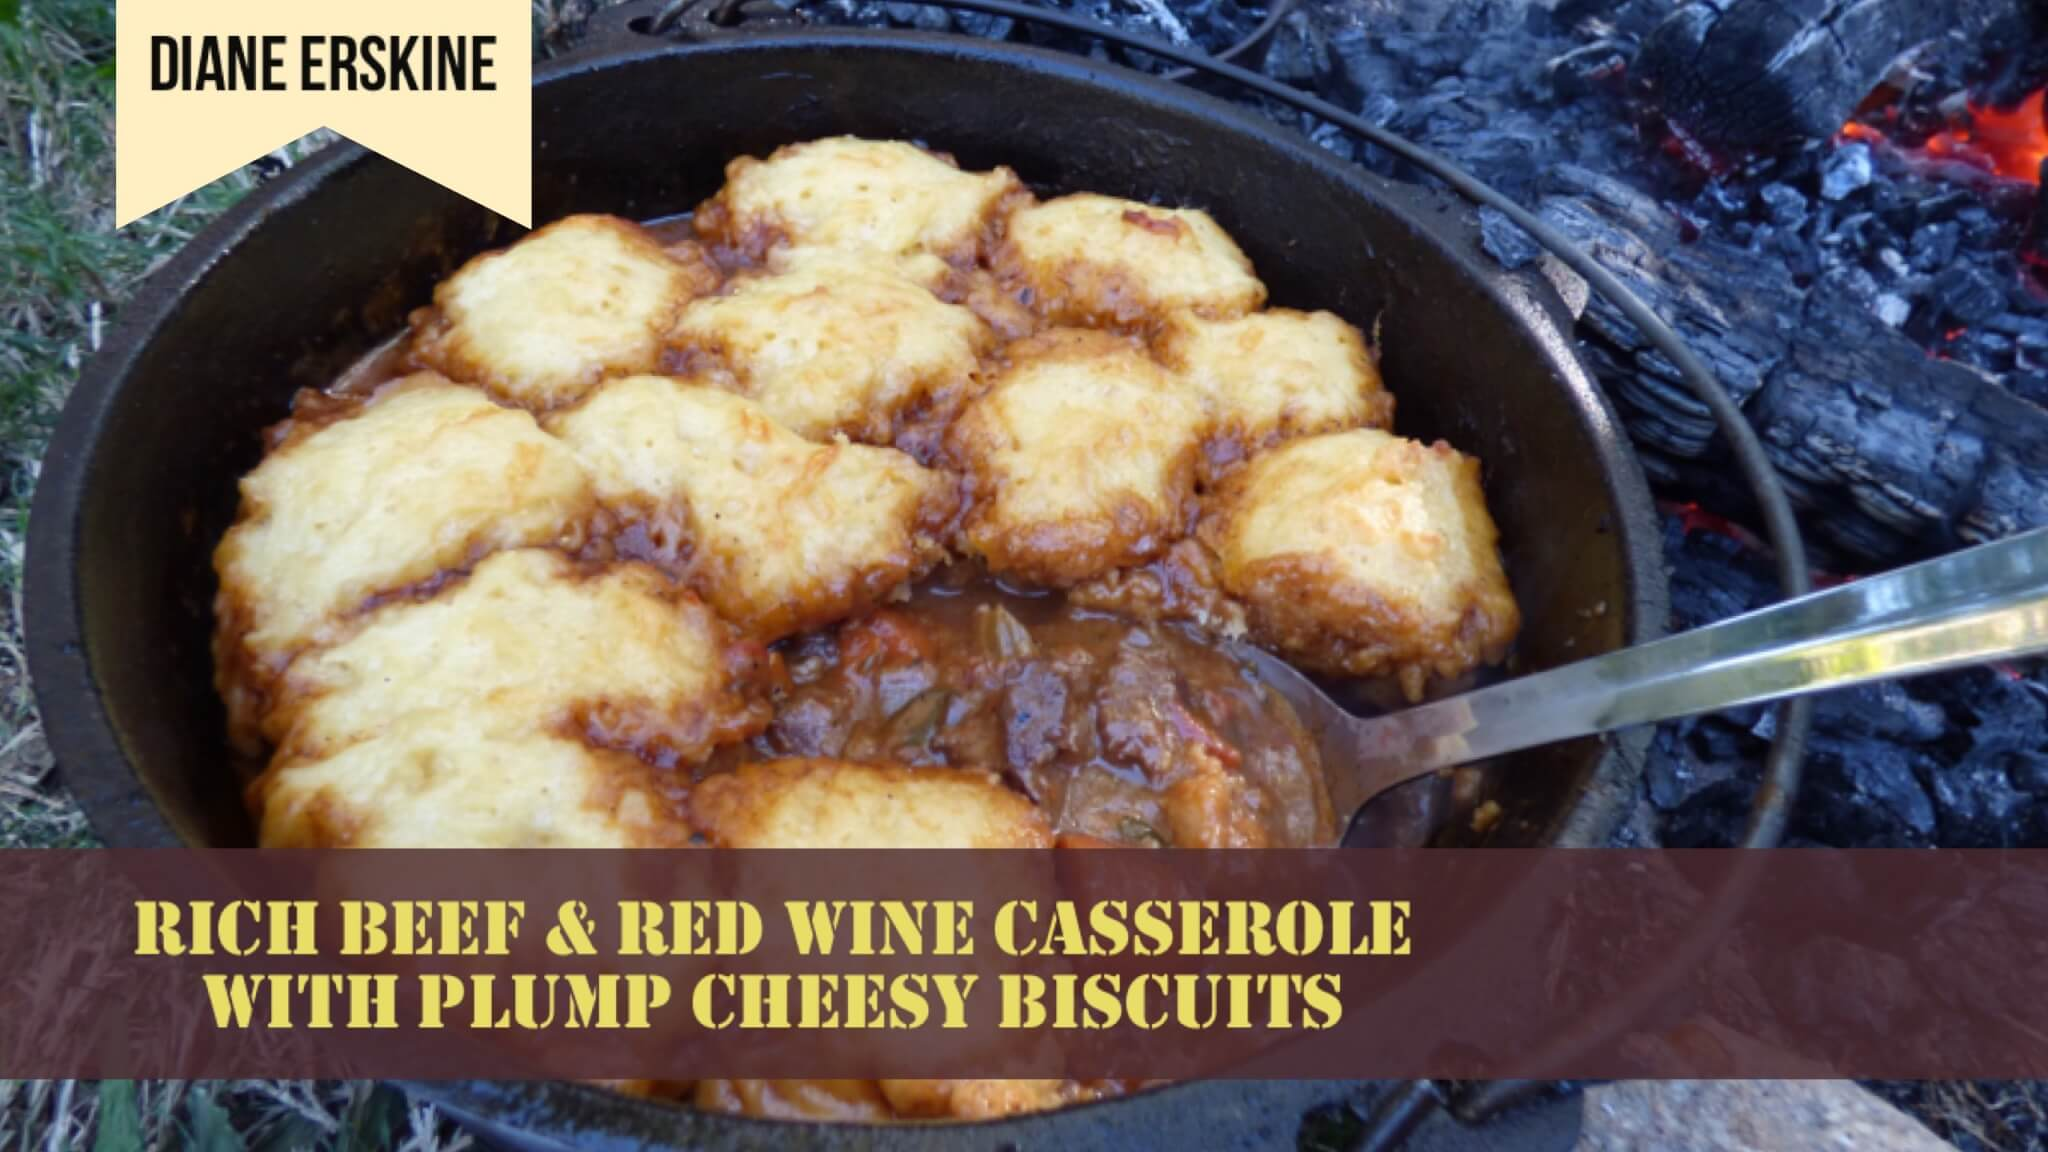 Rich Beef & Red Wine Casserole with Plump Cheesy Biscuits | Diane Erskine